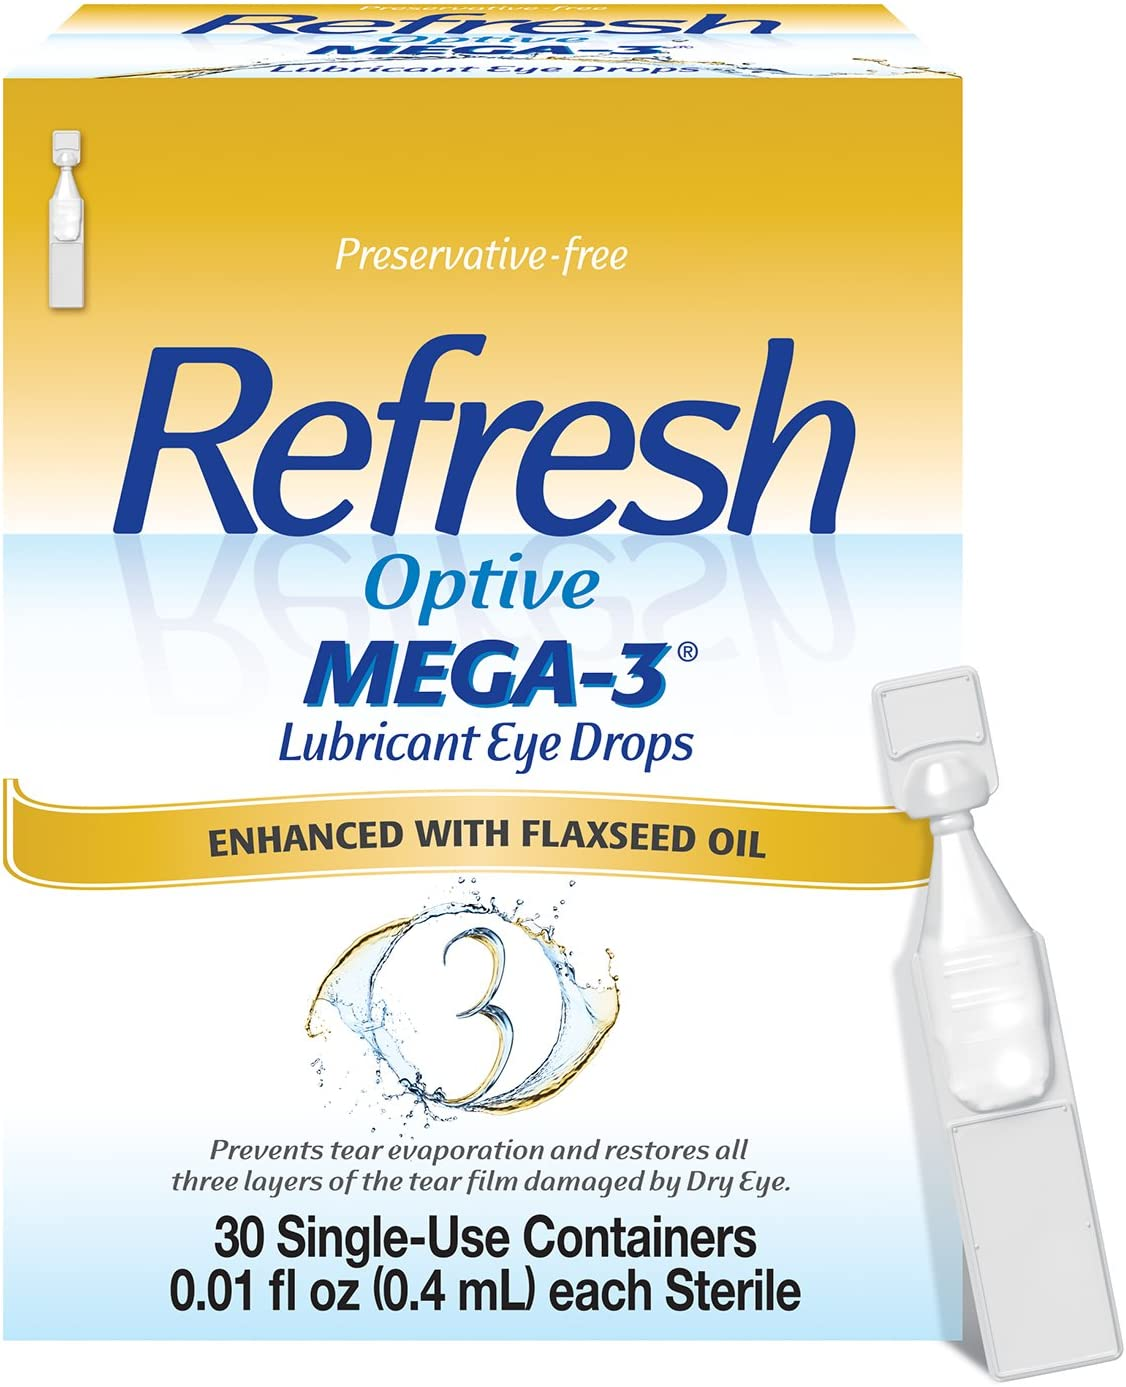 Refresh Optive Mega-3 Lubricant Eye Drops, Preservative-Free, 0.01 Fl Oz Single-Use Containers, 30 Count: Health & Personal Care